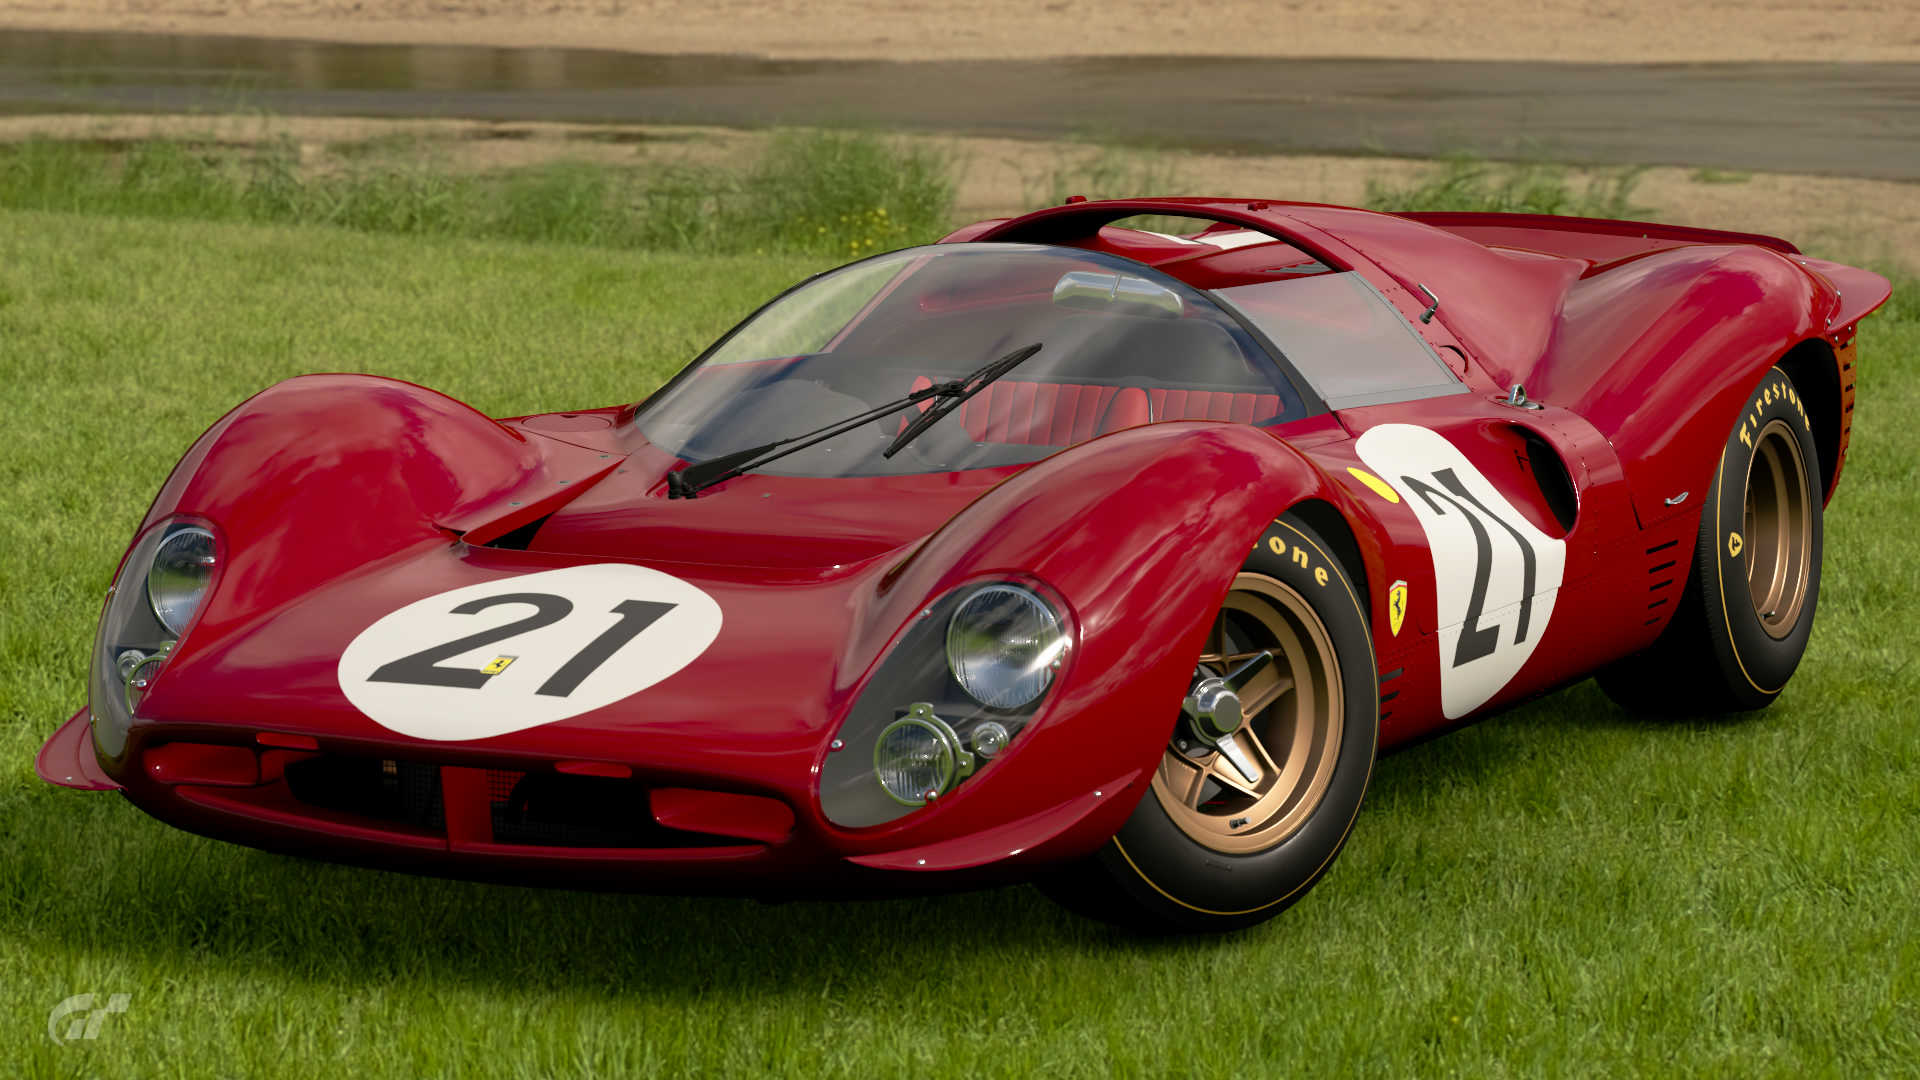 ferrari 330 p4 race car 39 67 gran turismo wiki fandom. Black Bedroom Furniture Sets. Home Design Ideas